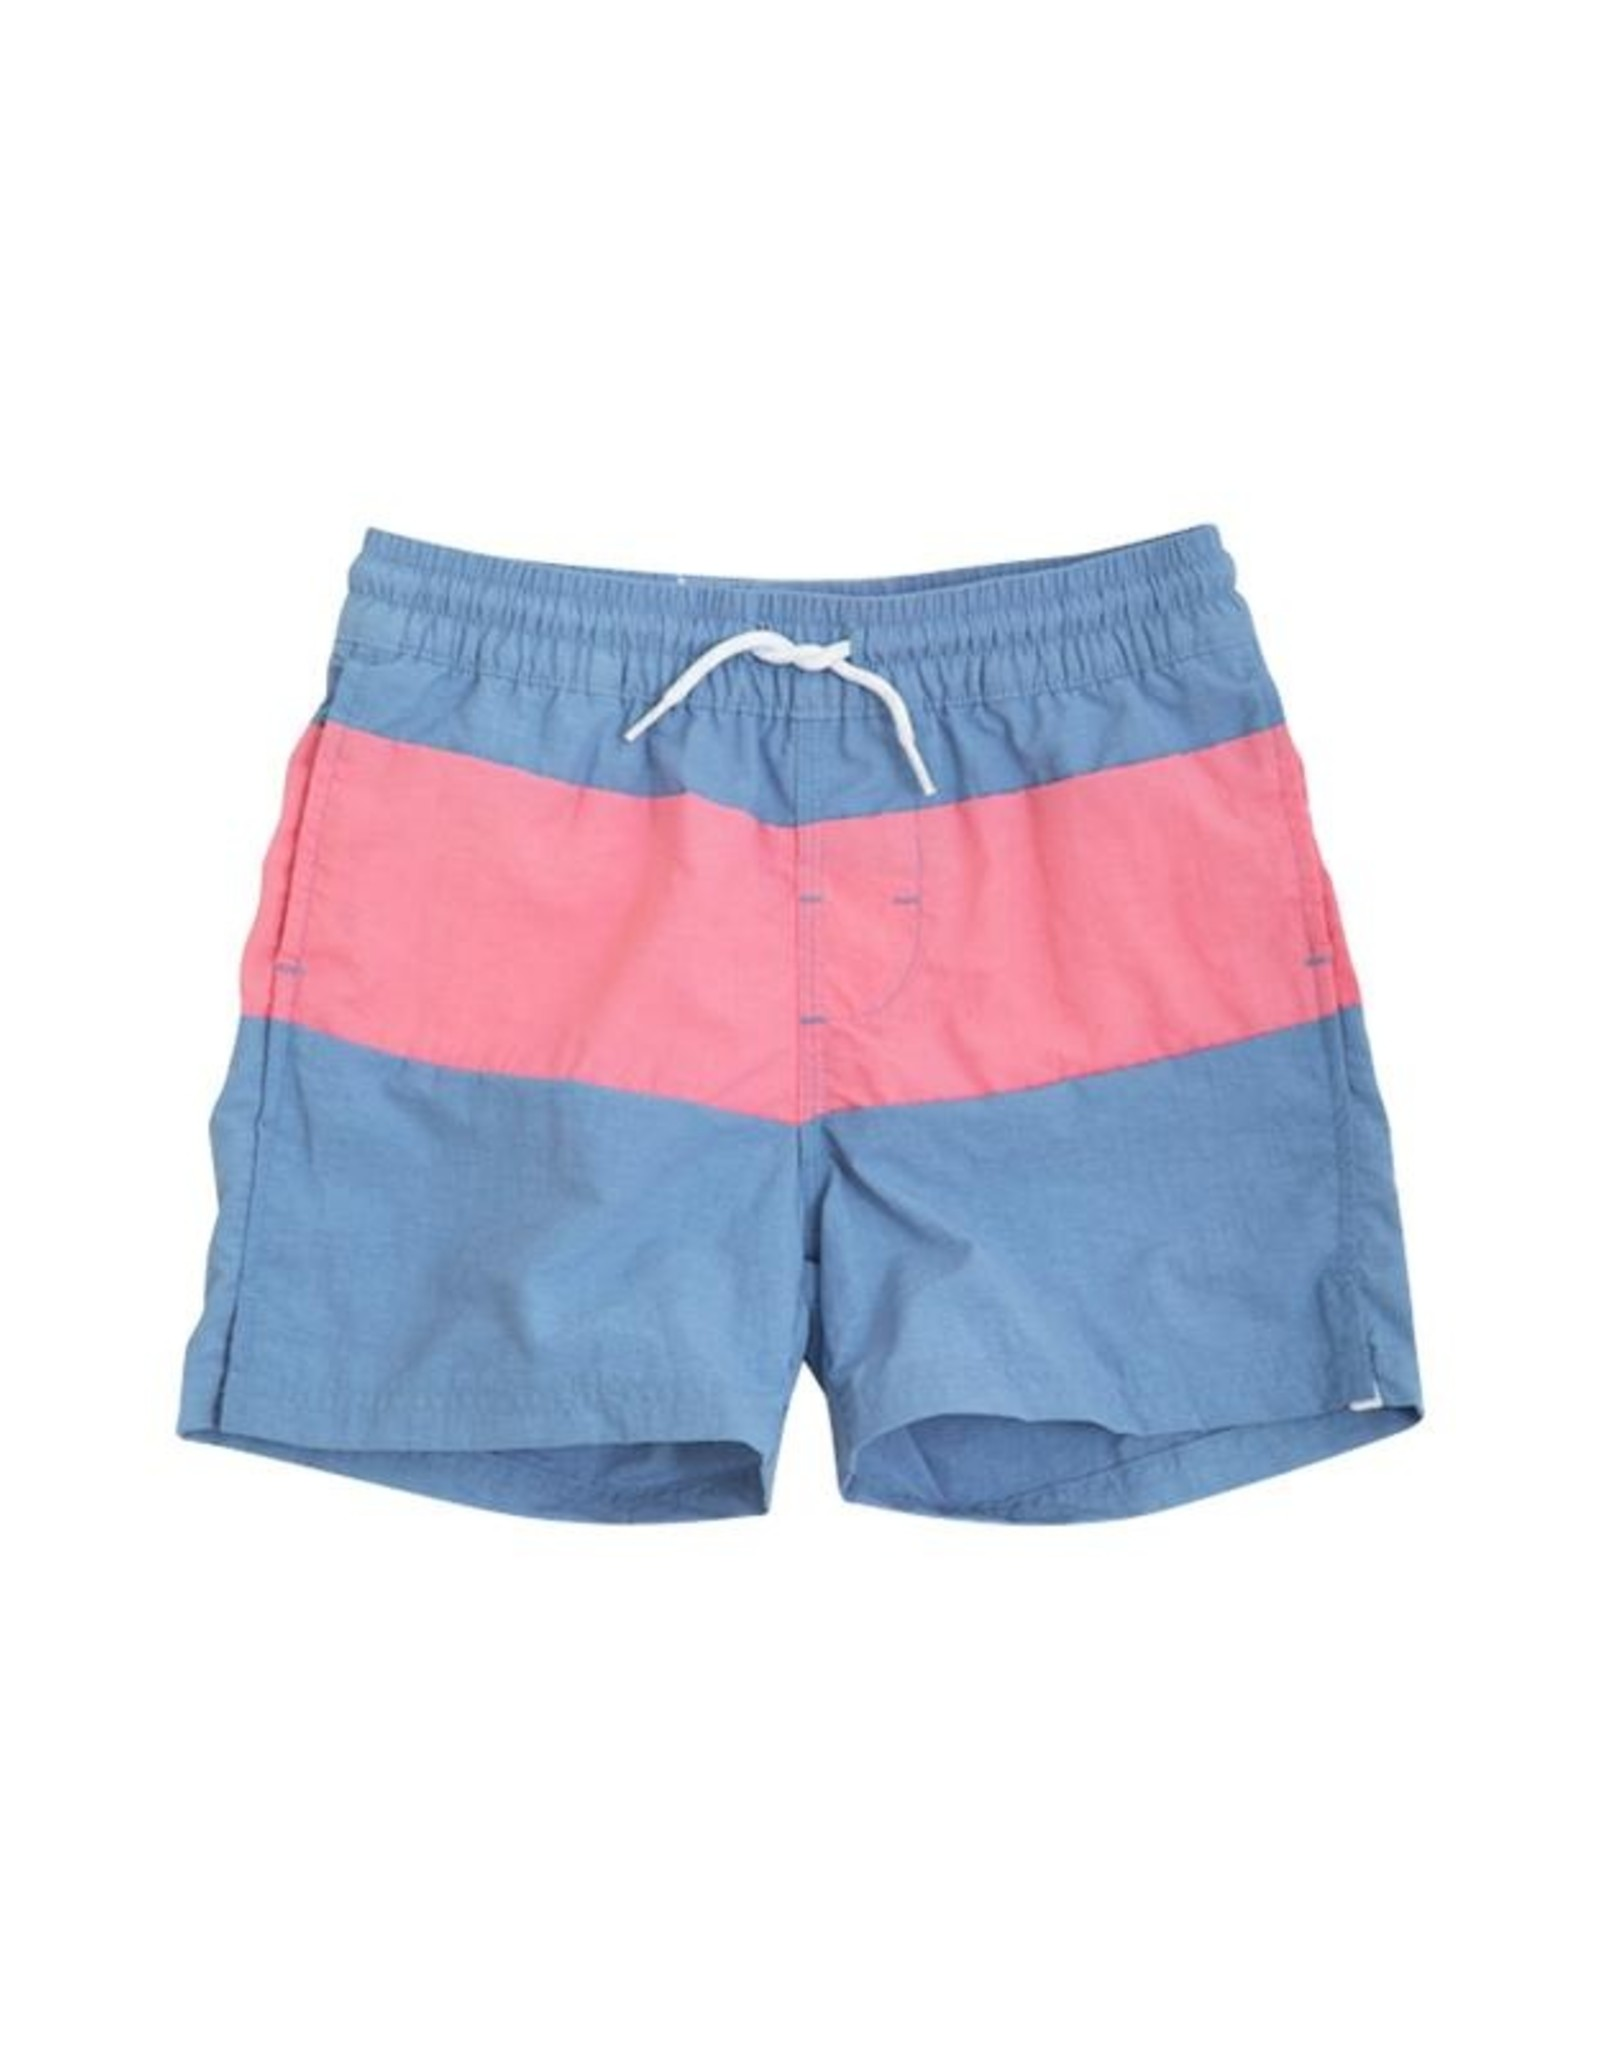 The Beaufort Bonnet Company Country Club Colorblock Trunk